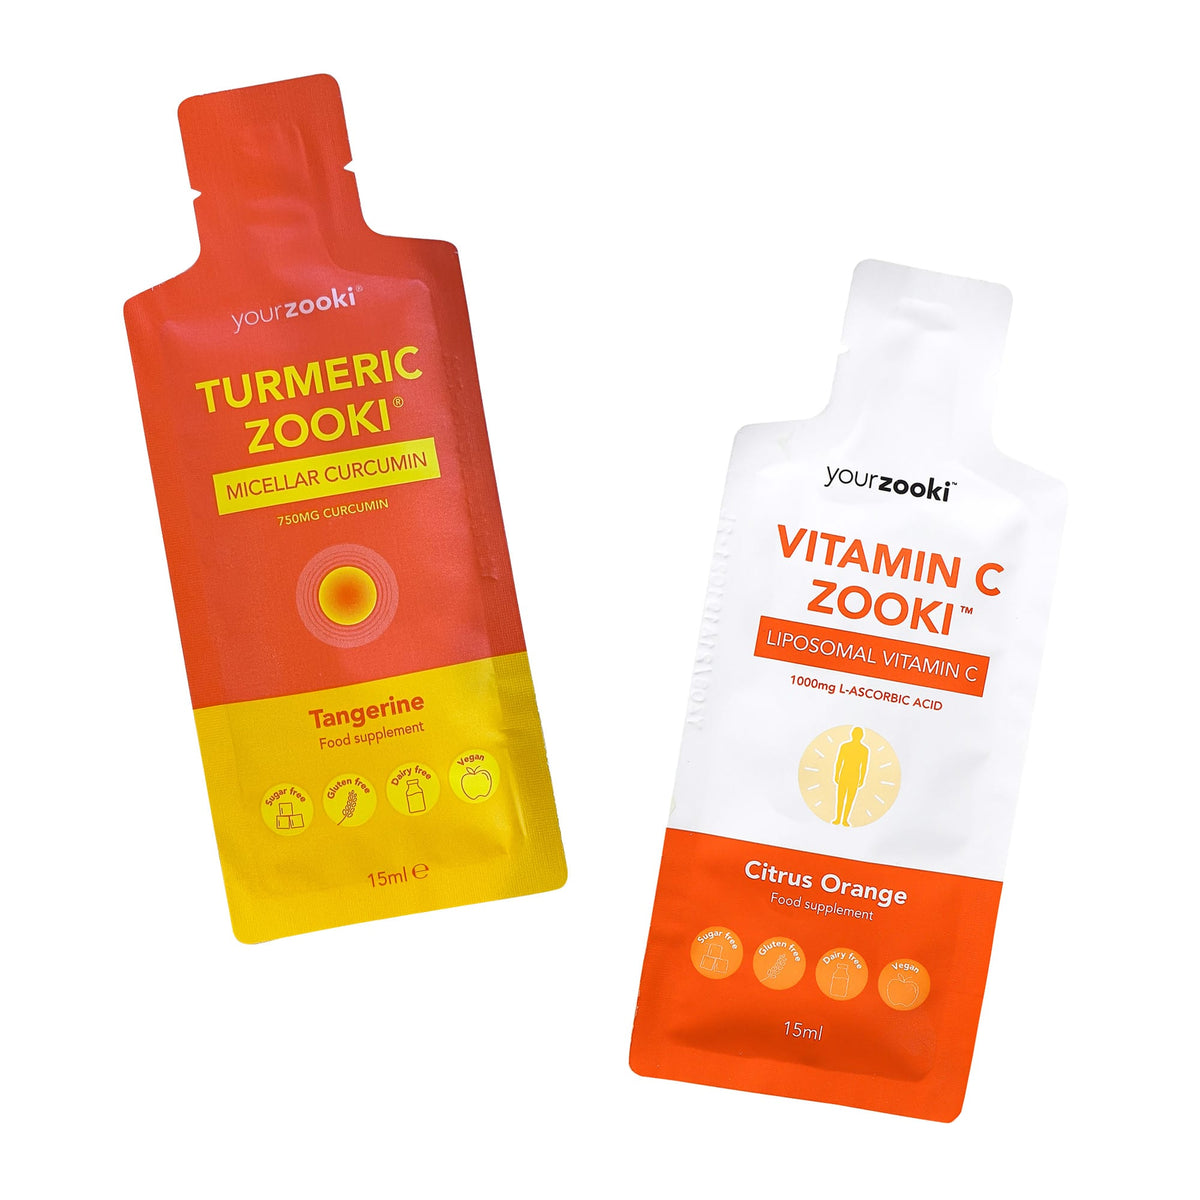 Vitamin C + Turmeric Zooki Monthly Bundle